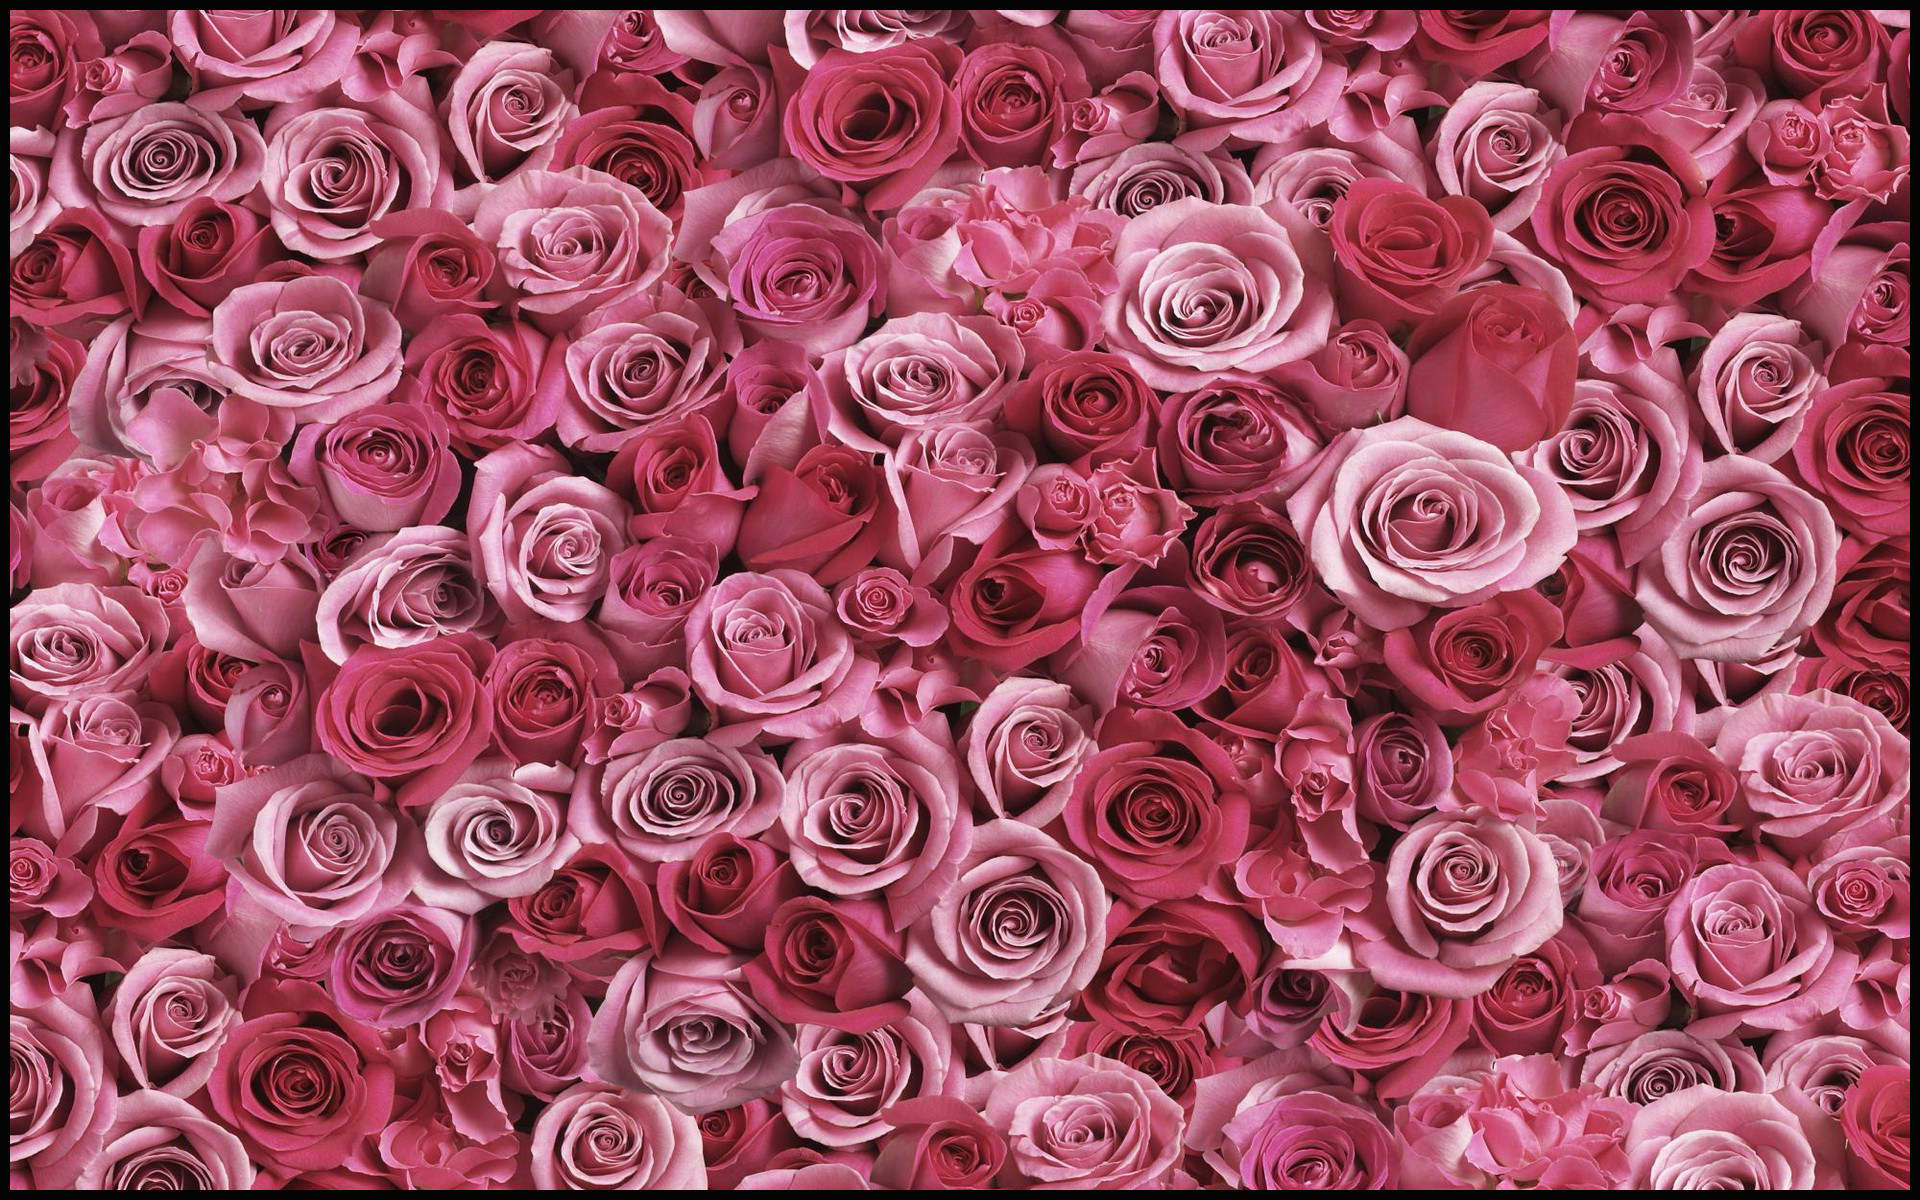 roses background images 183��